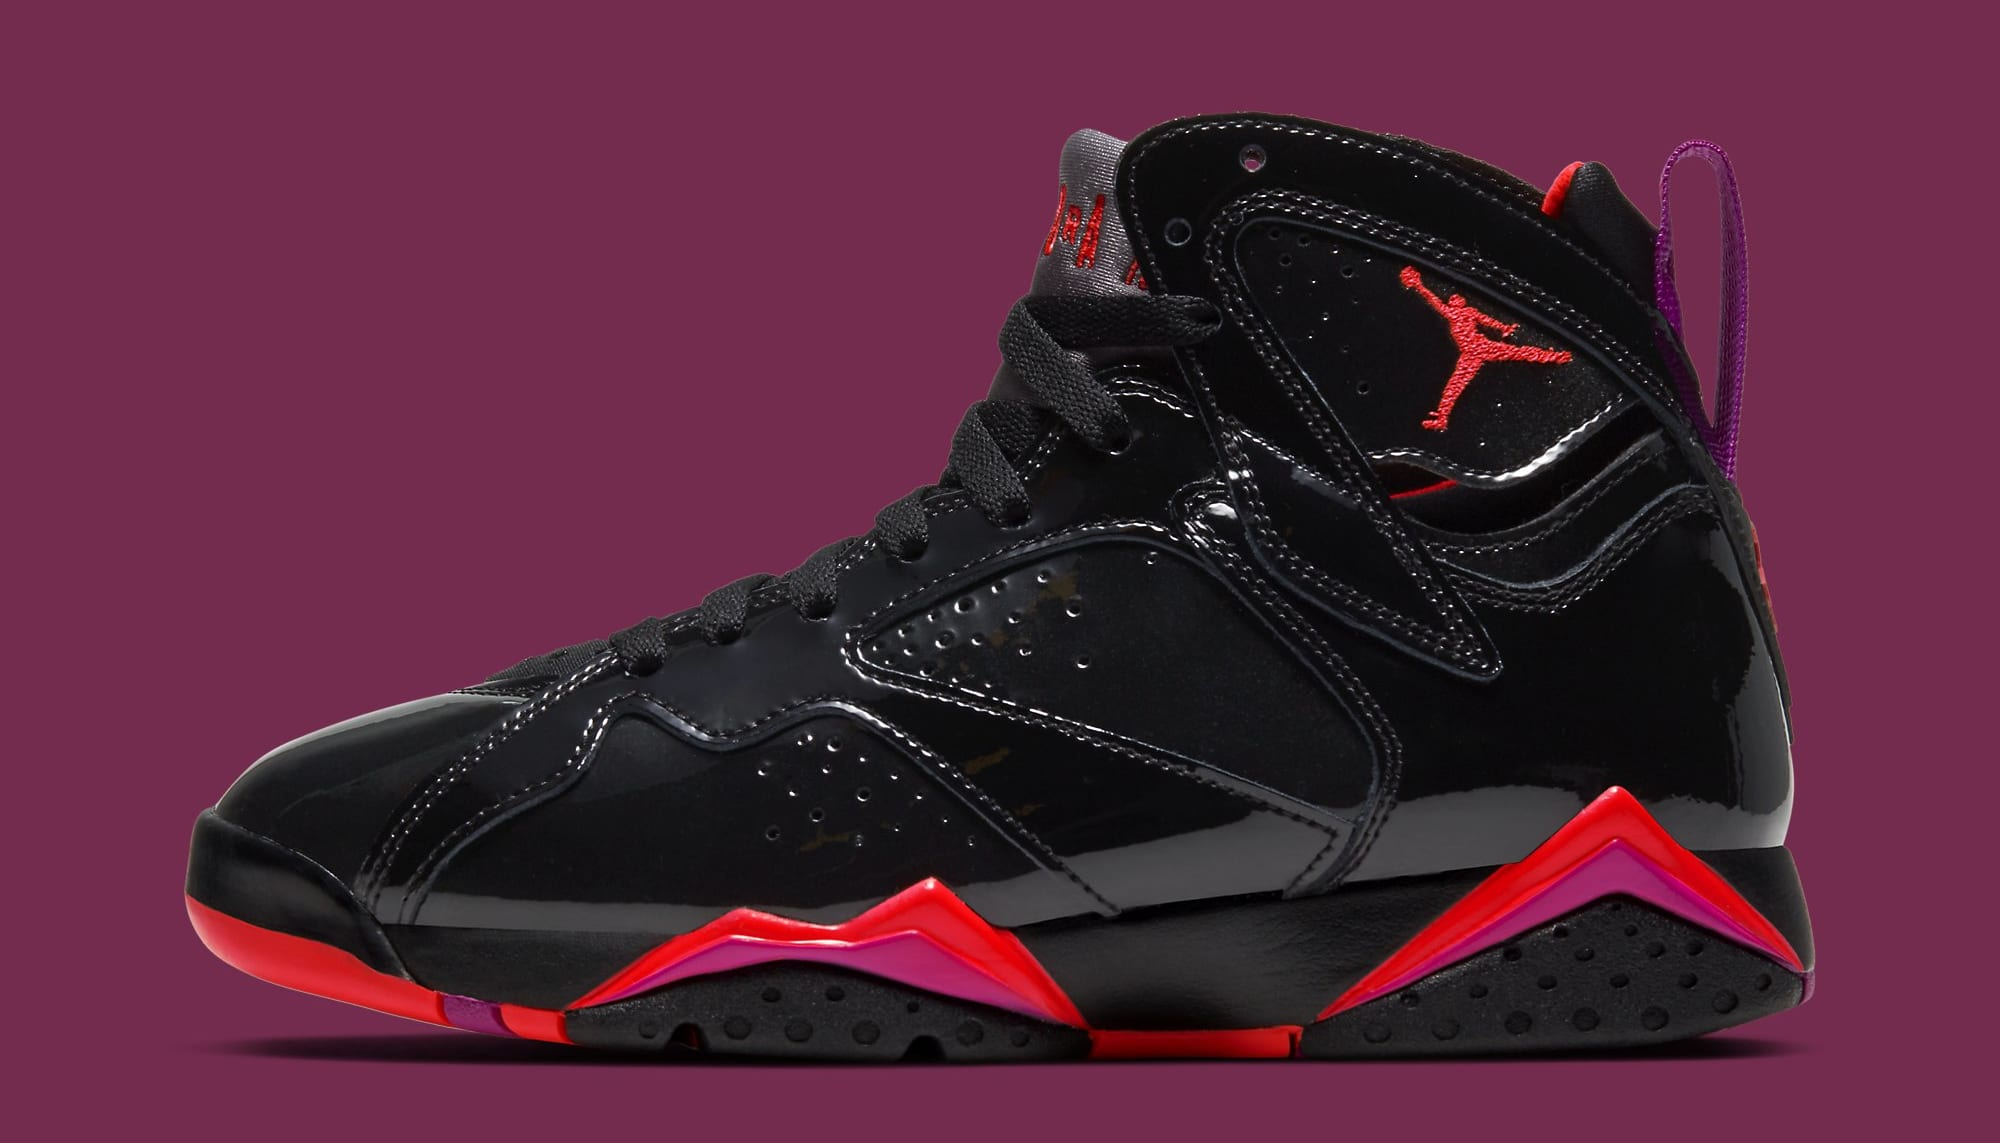 air-jordan-7-vii-retro-wmns-black-patent-leather-313358-006-lateral